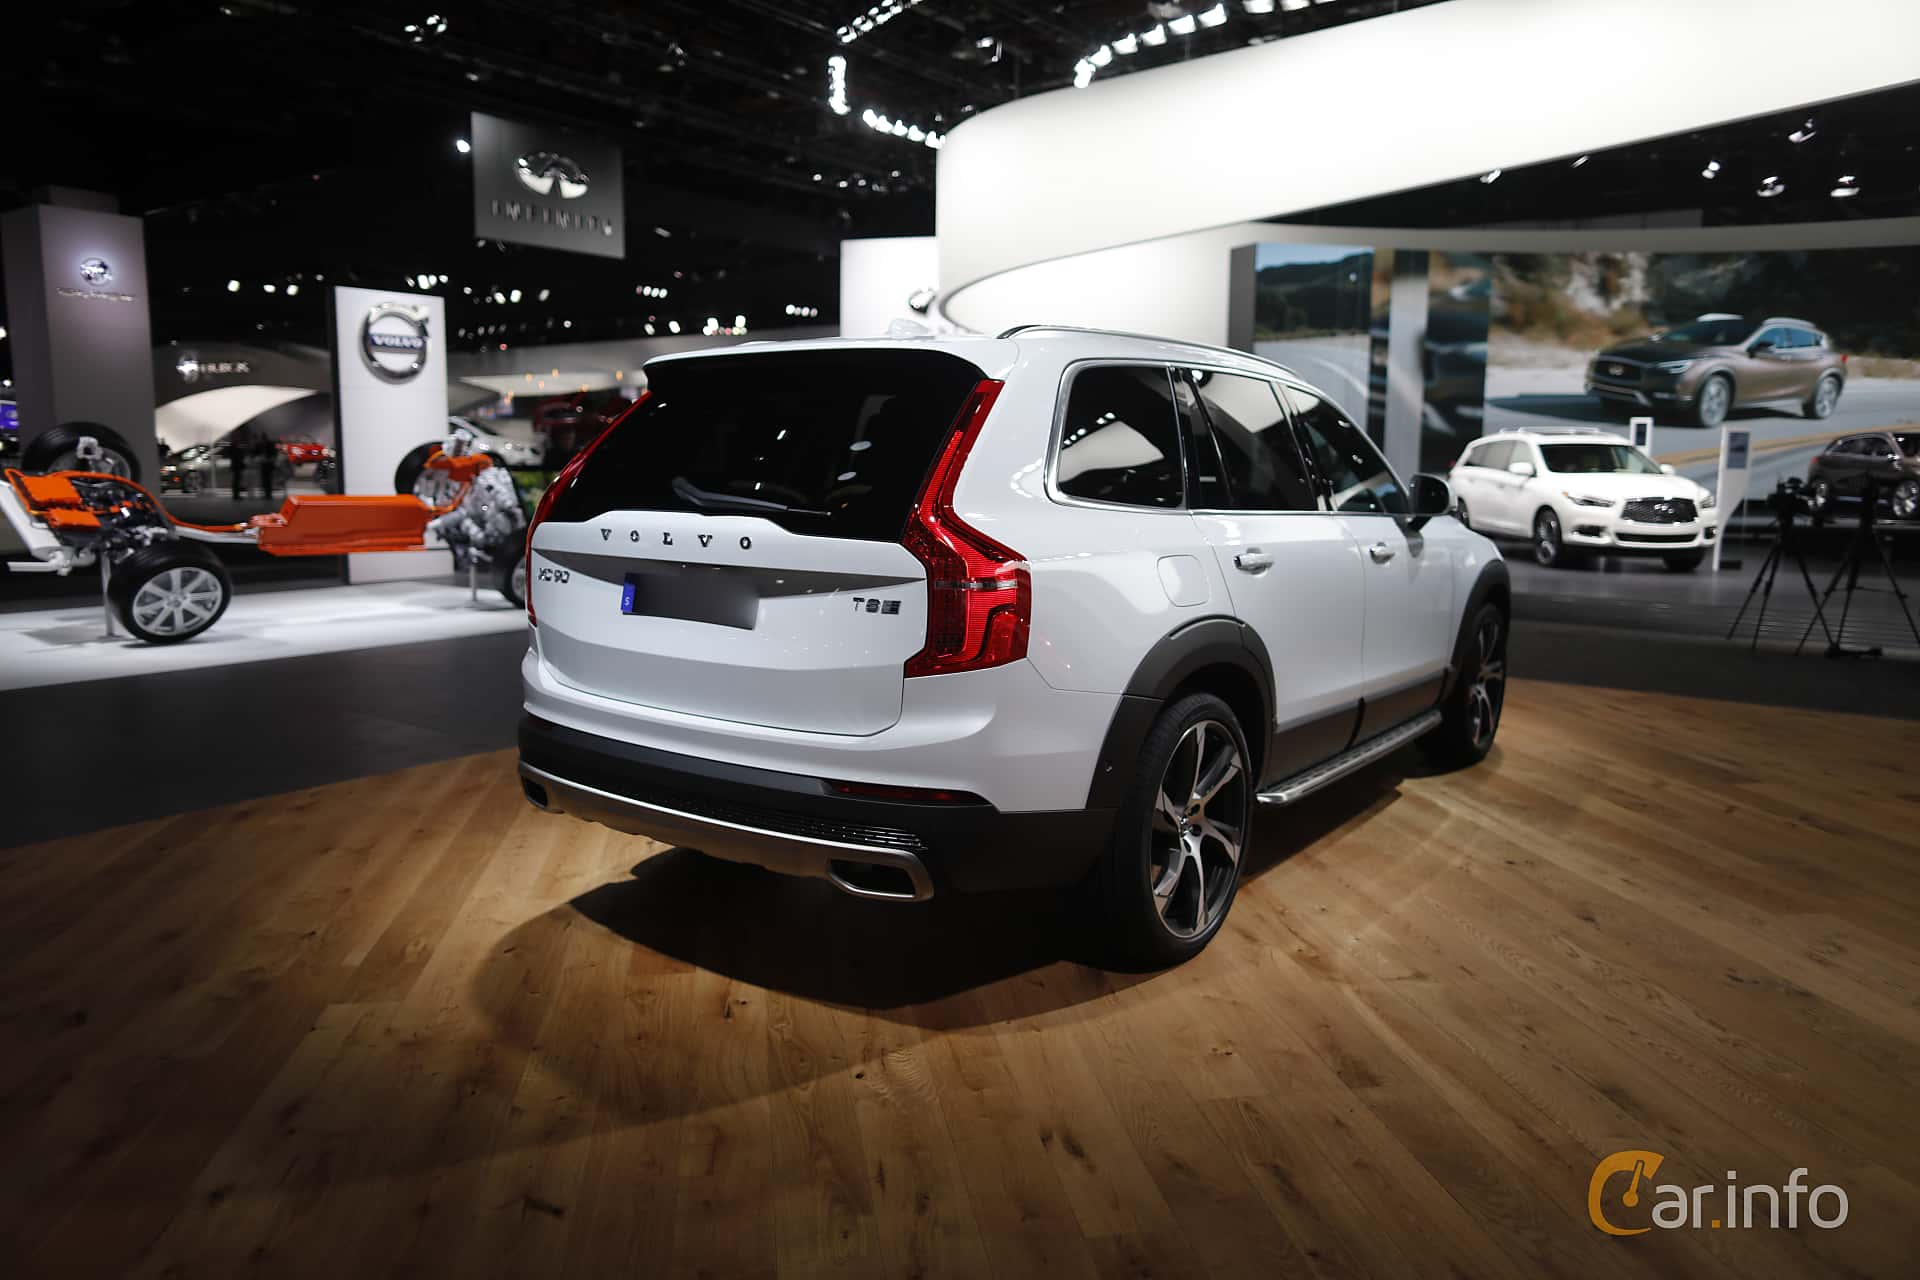 Volvo XC90 T8 AWD Geartronic, 407hp, 2017 at North American International Auto Show 2017